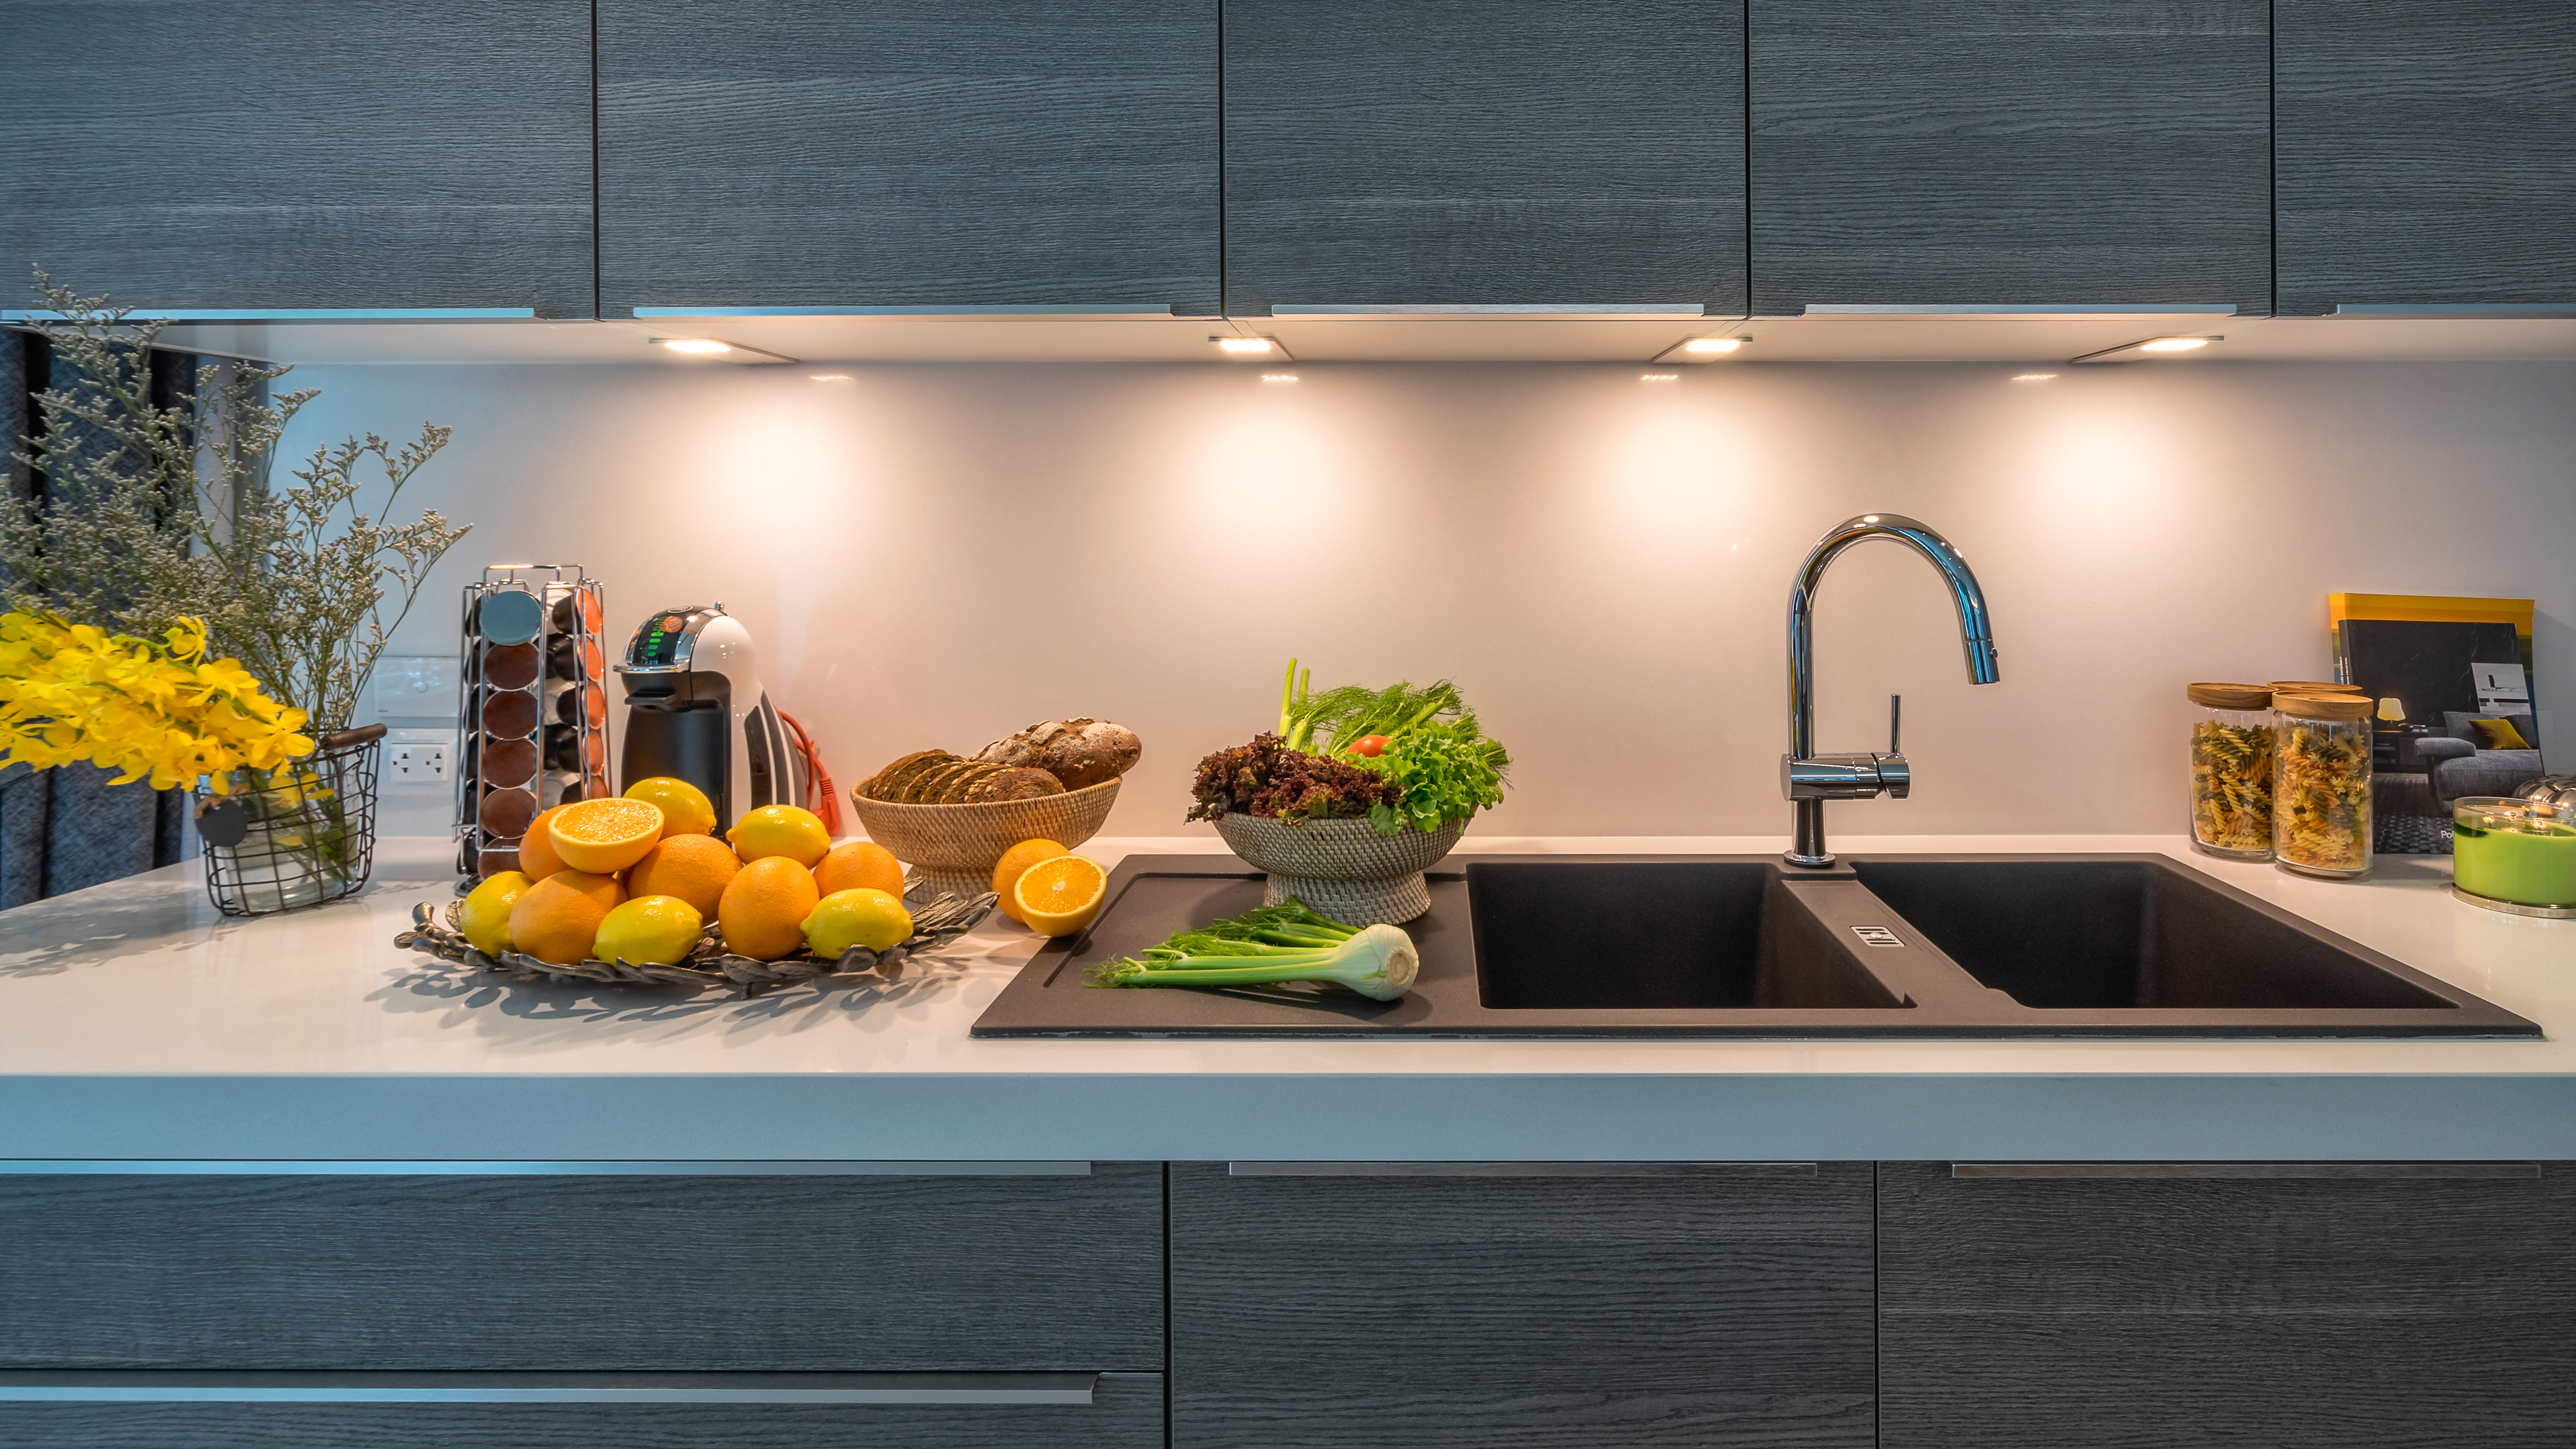 https homeguides sfgate com type lighting recommended above kitchen sink 69609 html